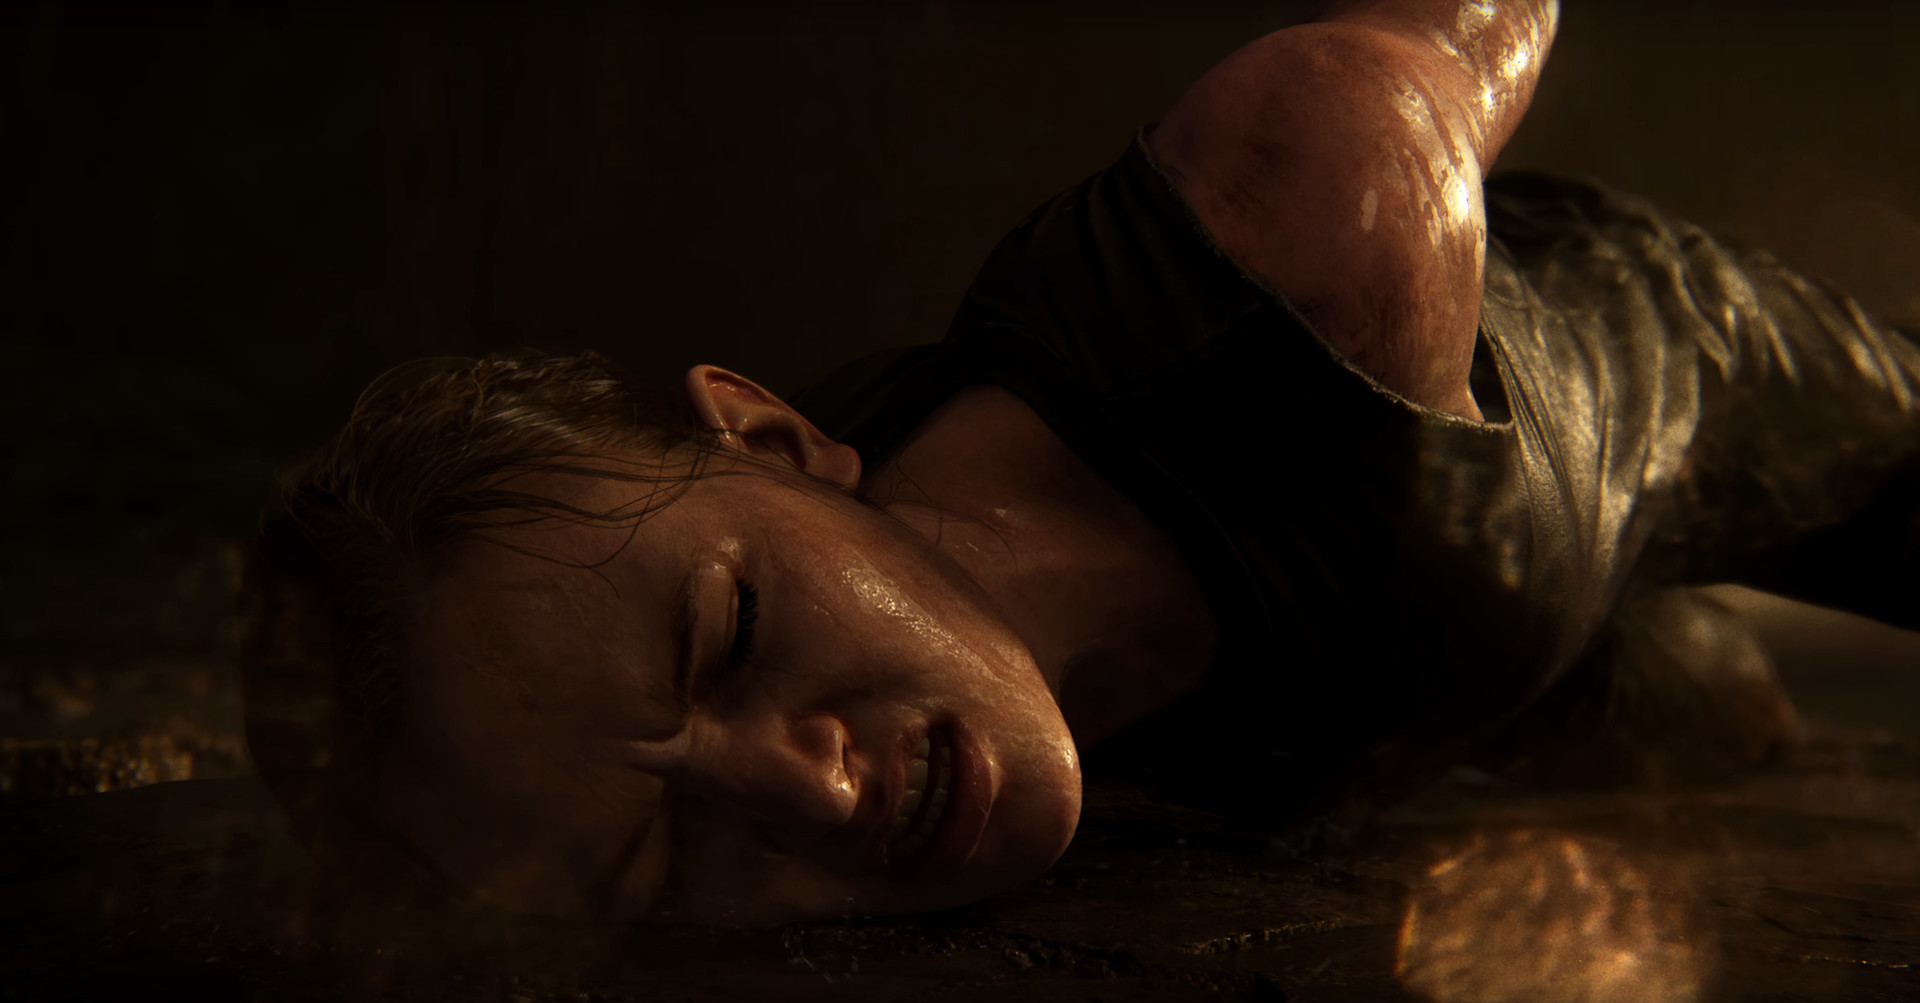 The Last of Us: Part 2 - Last of Us: Part 2, the